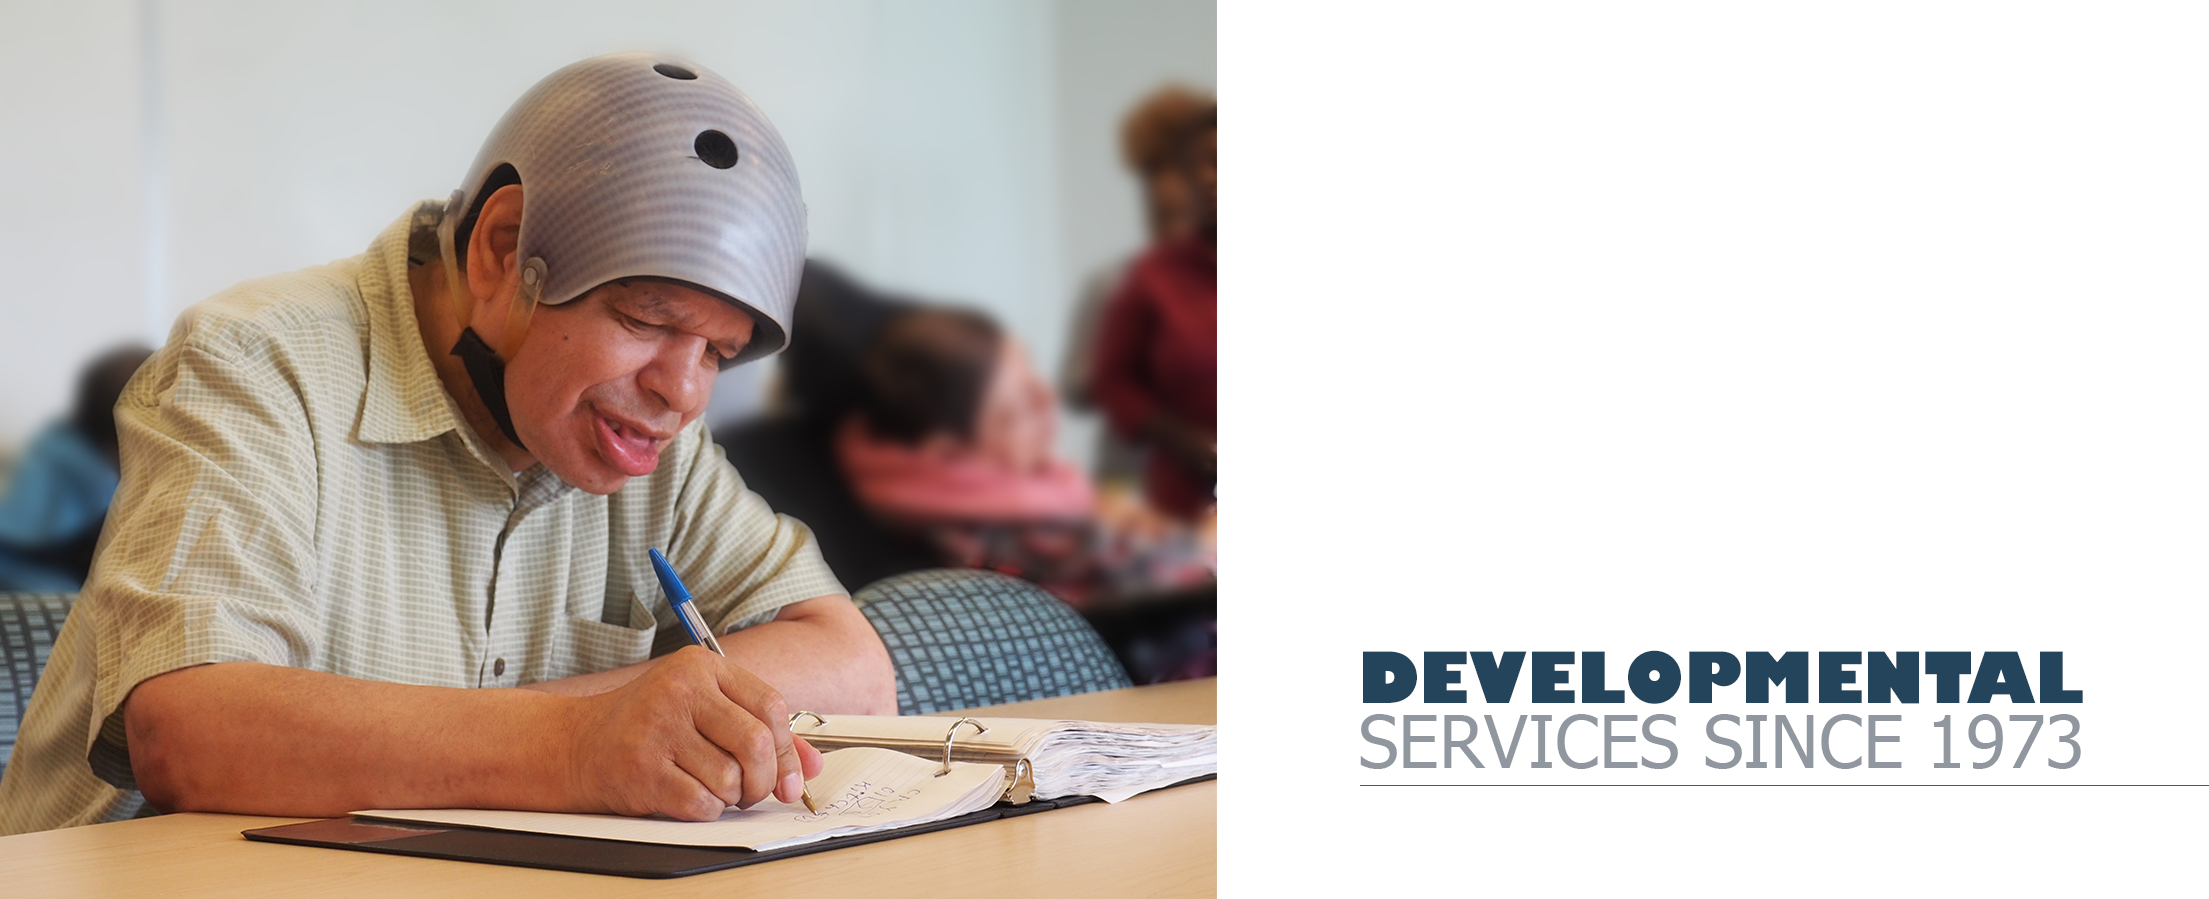 Developmental Services Since 1973